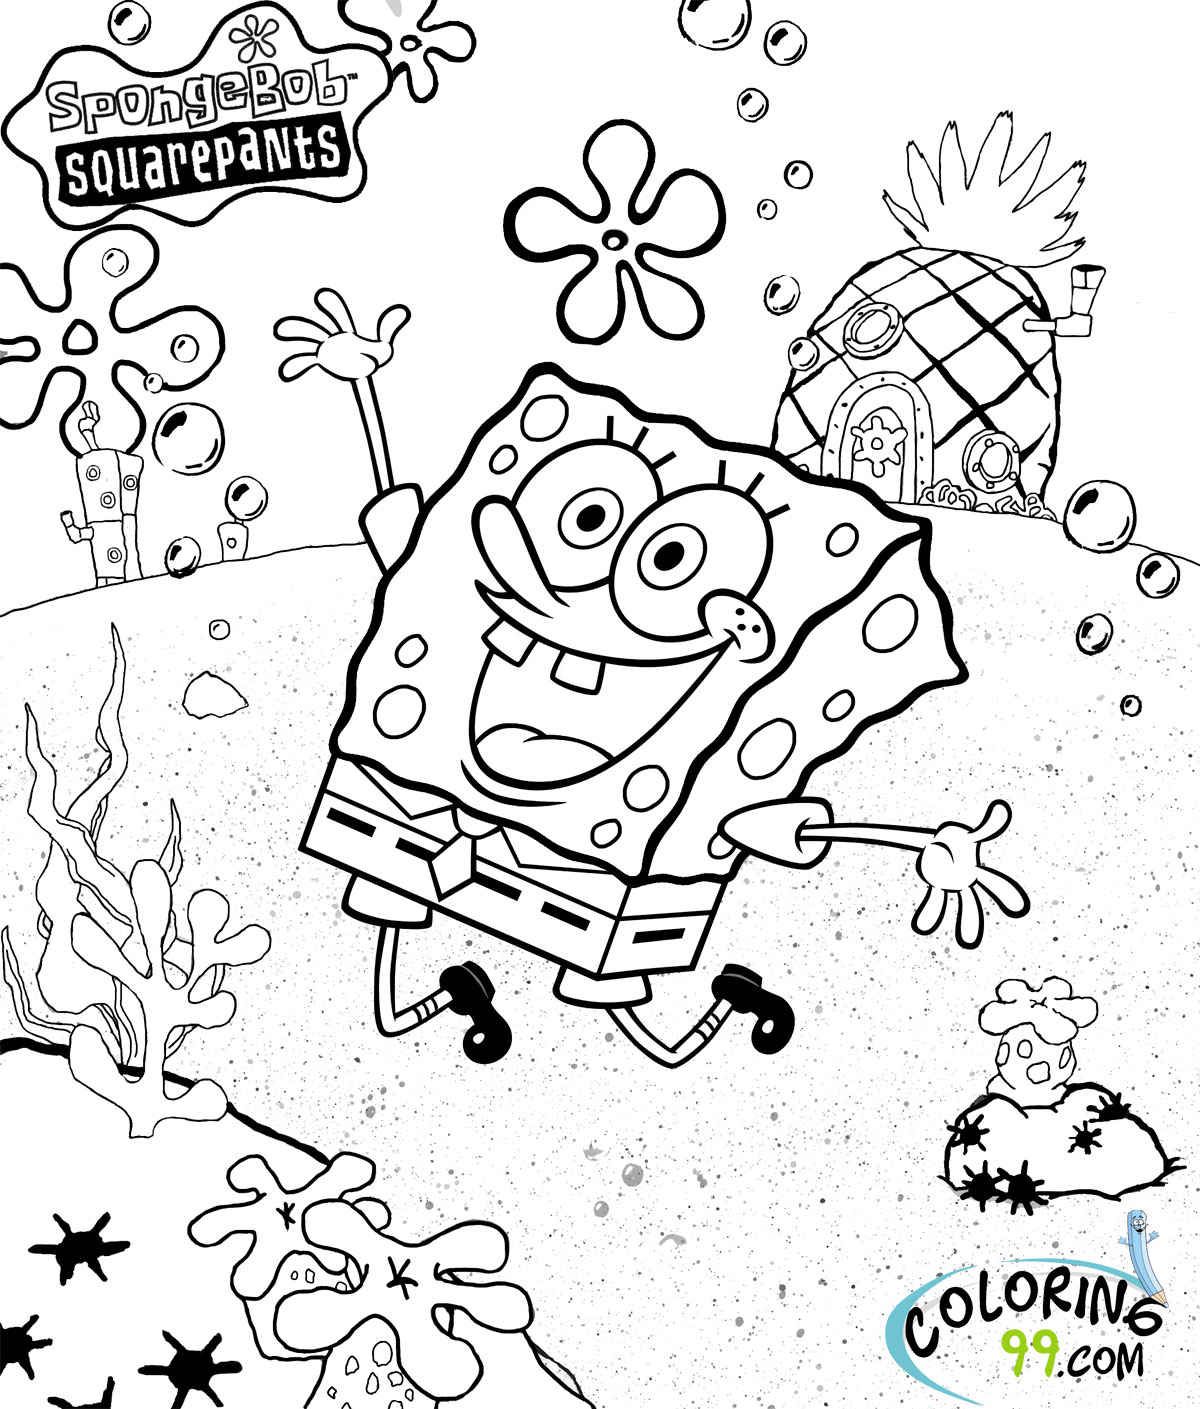 spongebob squarepants coloring pages free printable